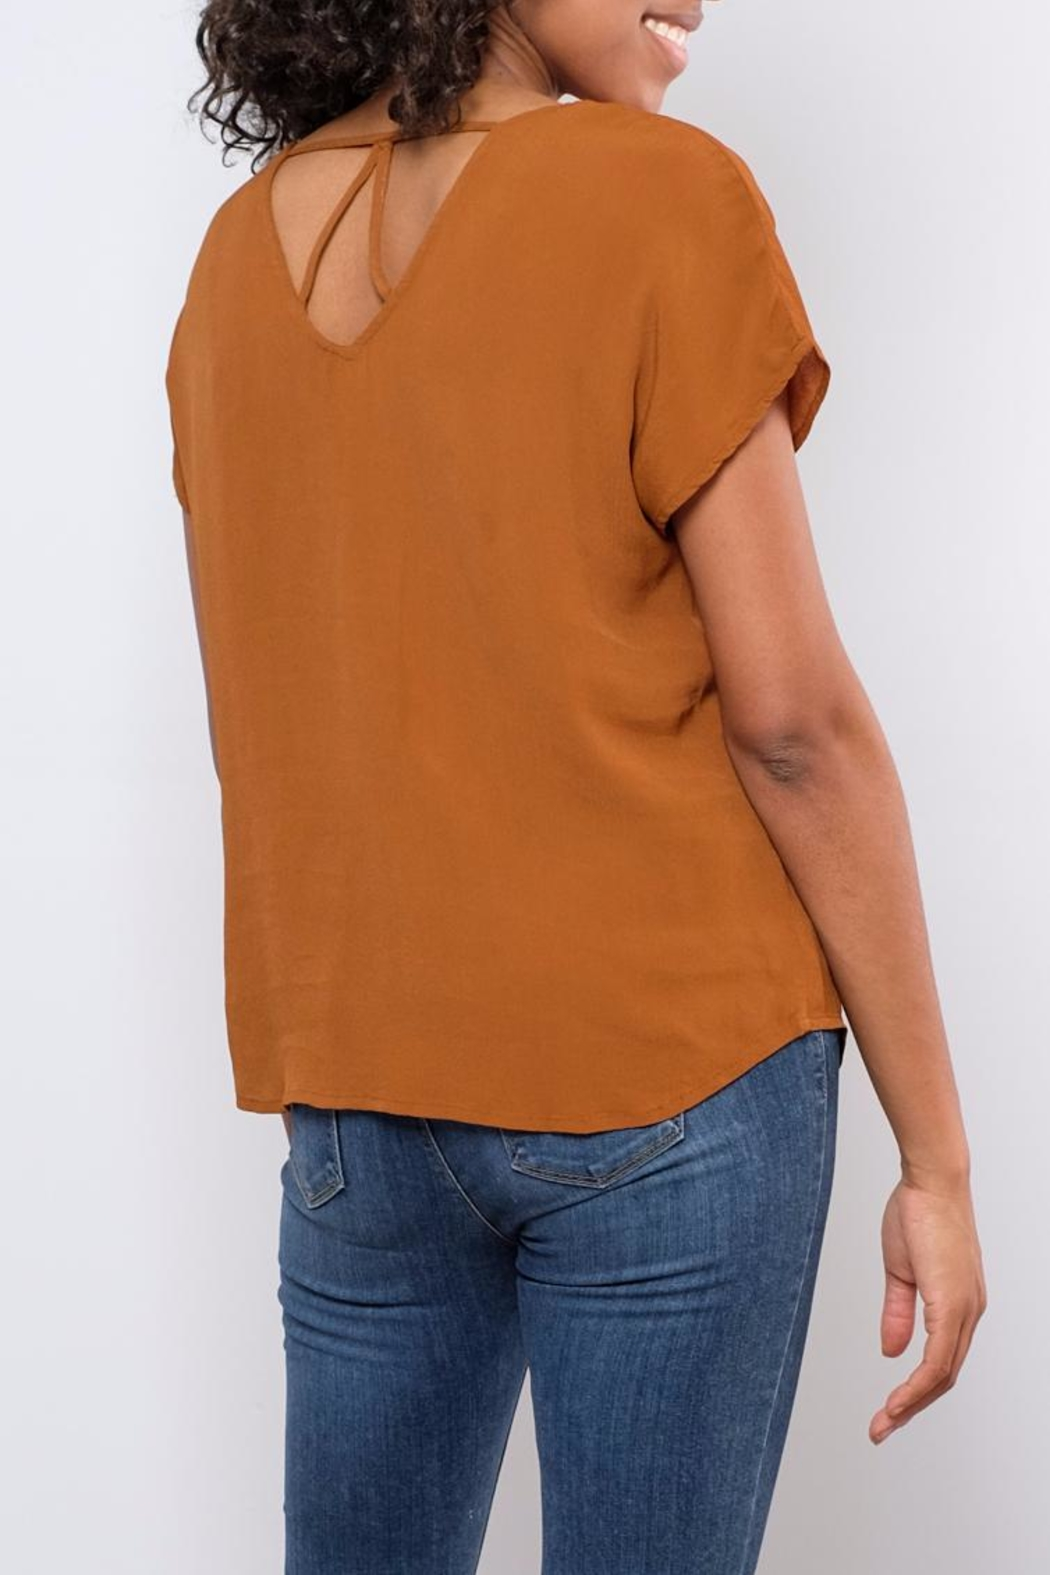 B.young Strap Detail Blouse - Back Cropped Image